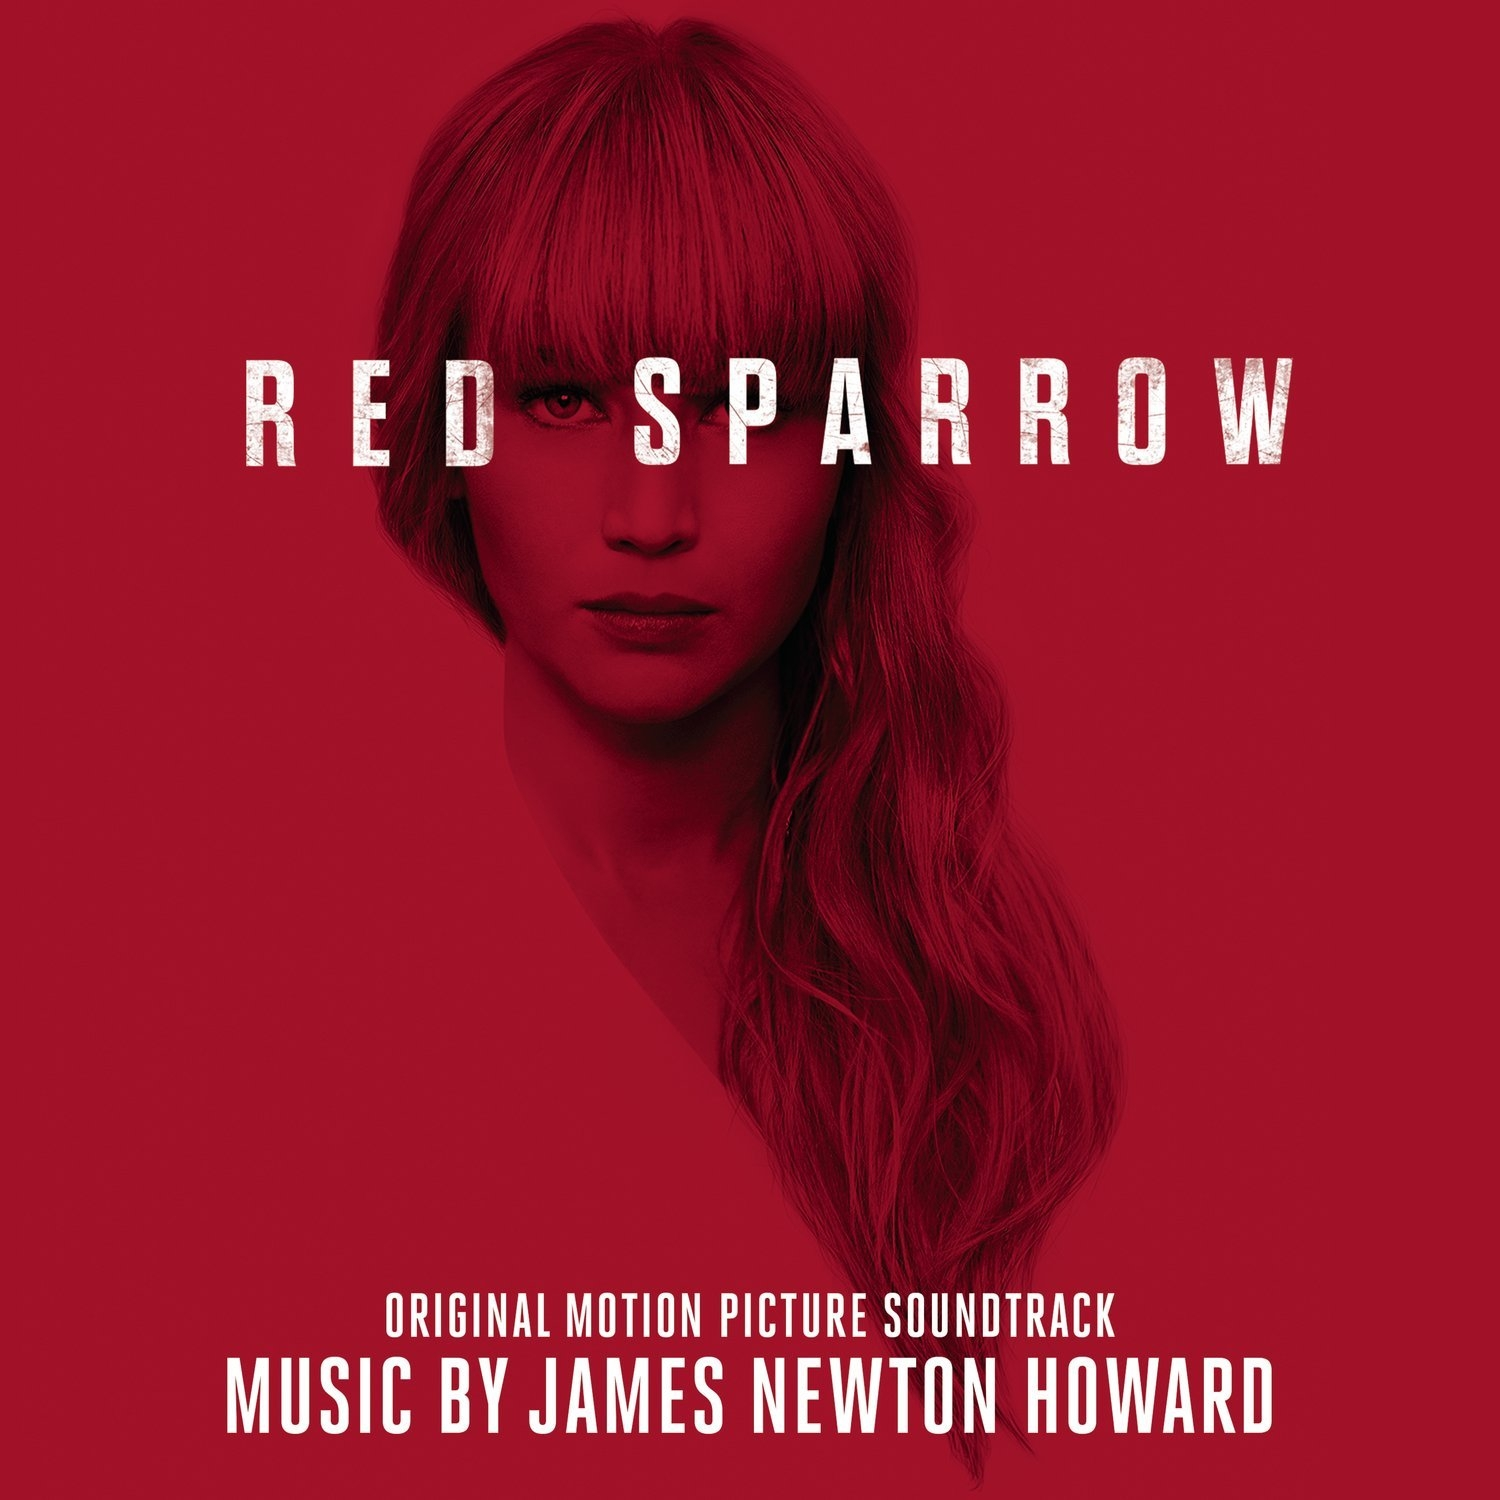 ost 04 18 red sparrow